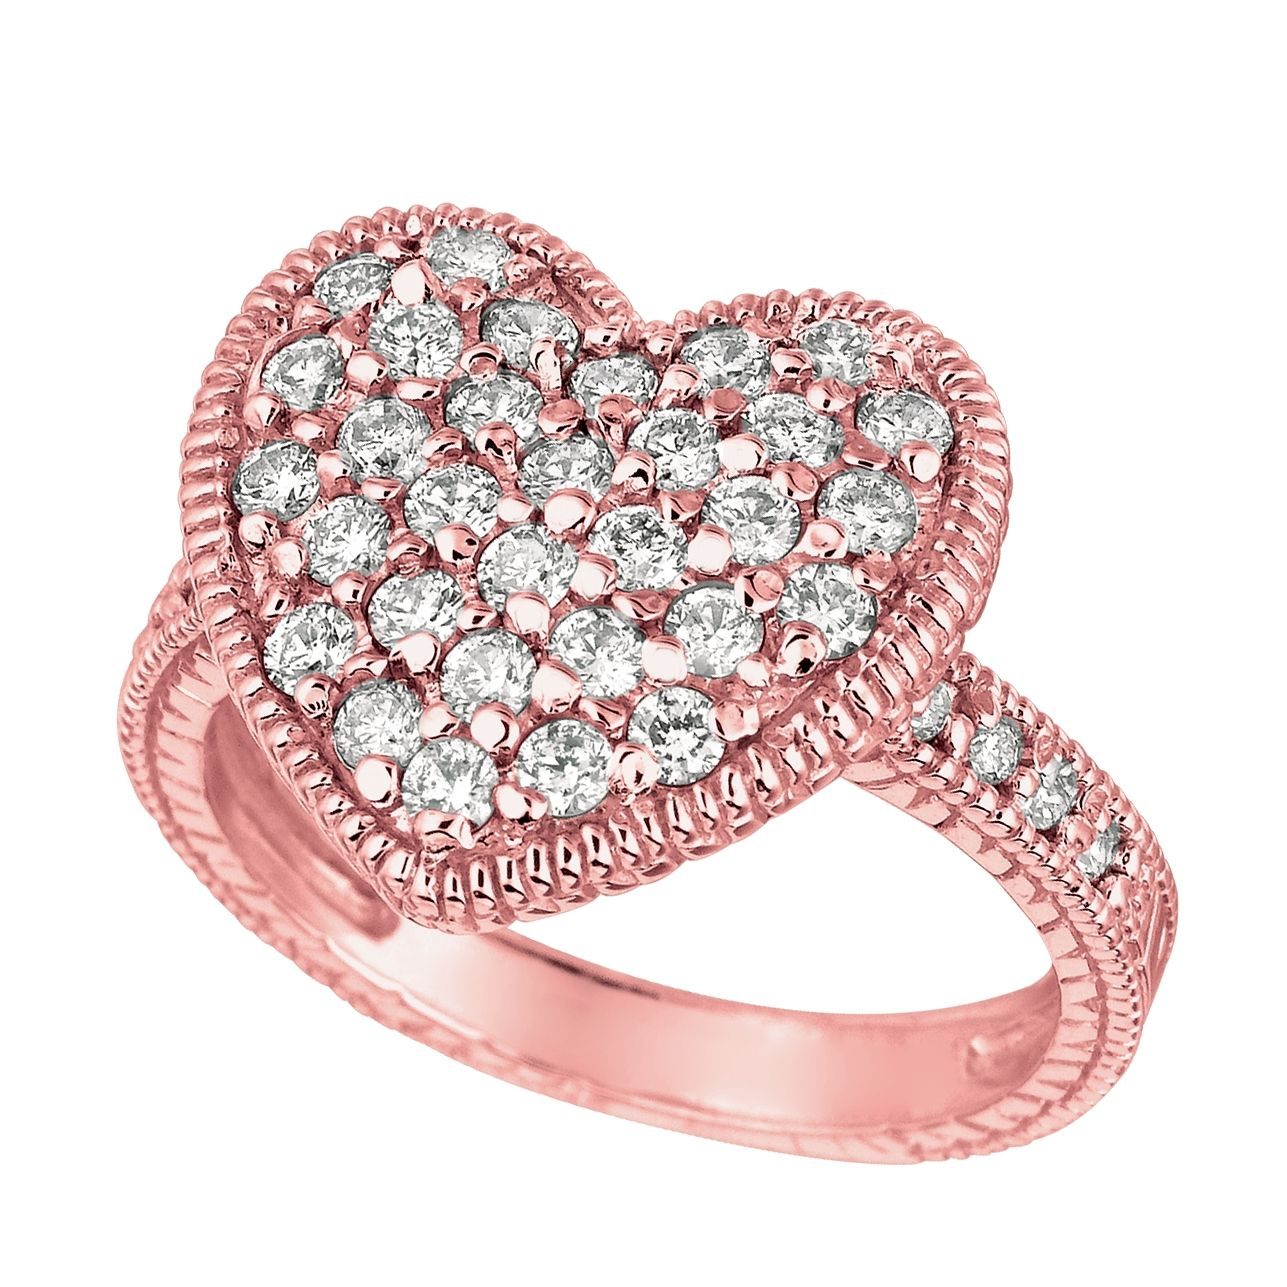 and rings pink all ring set messika rose with not prongs such band gold pin shaped engagement after diamond a bad pav romance heart